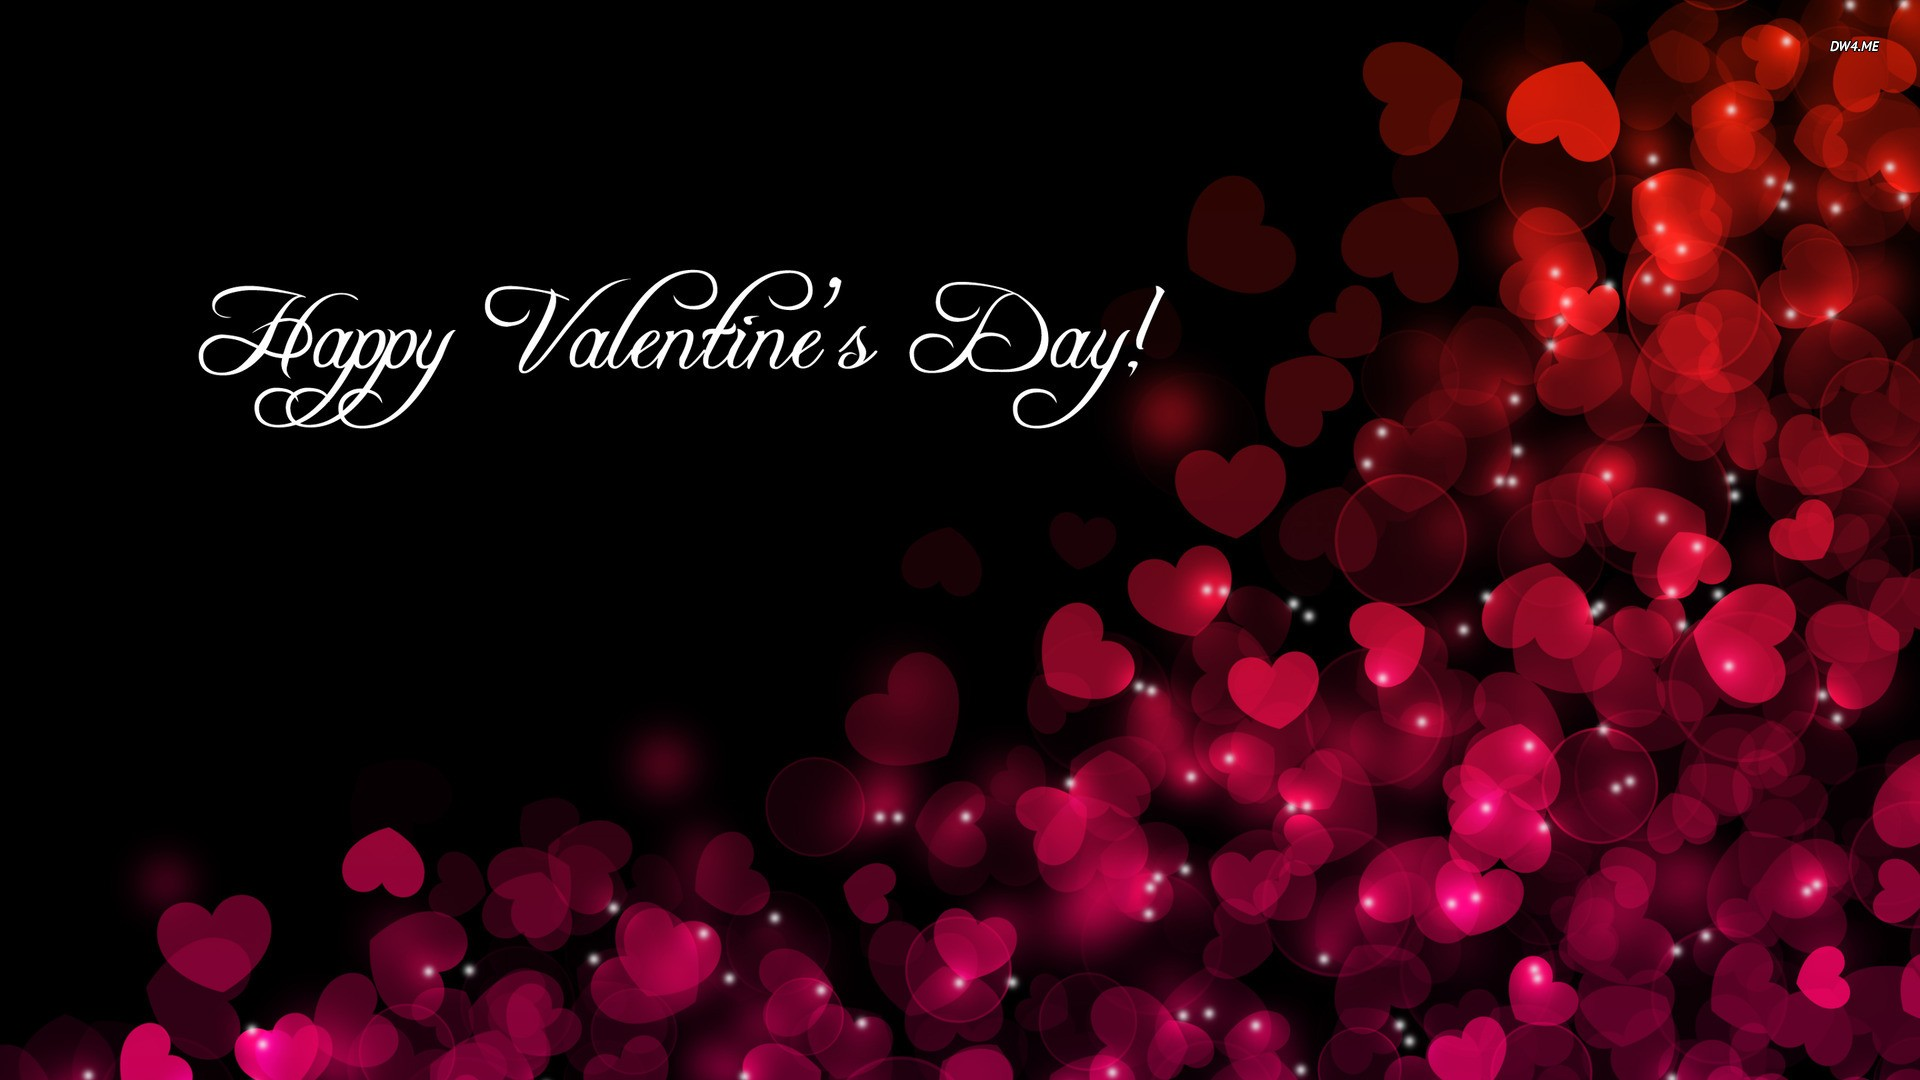 Happy Valentines Day Wallpapers